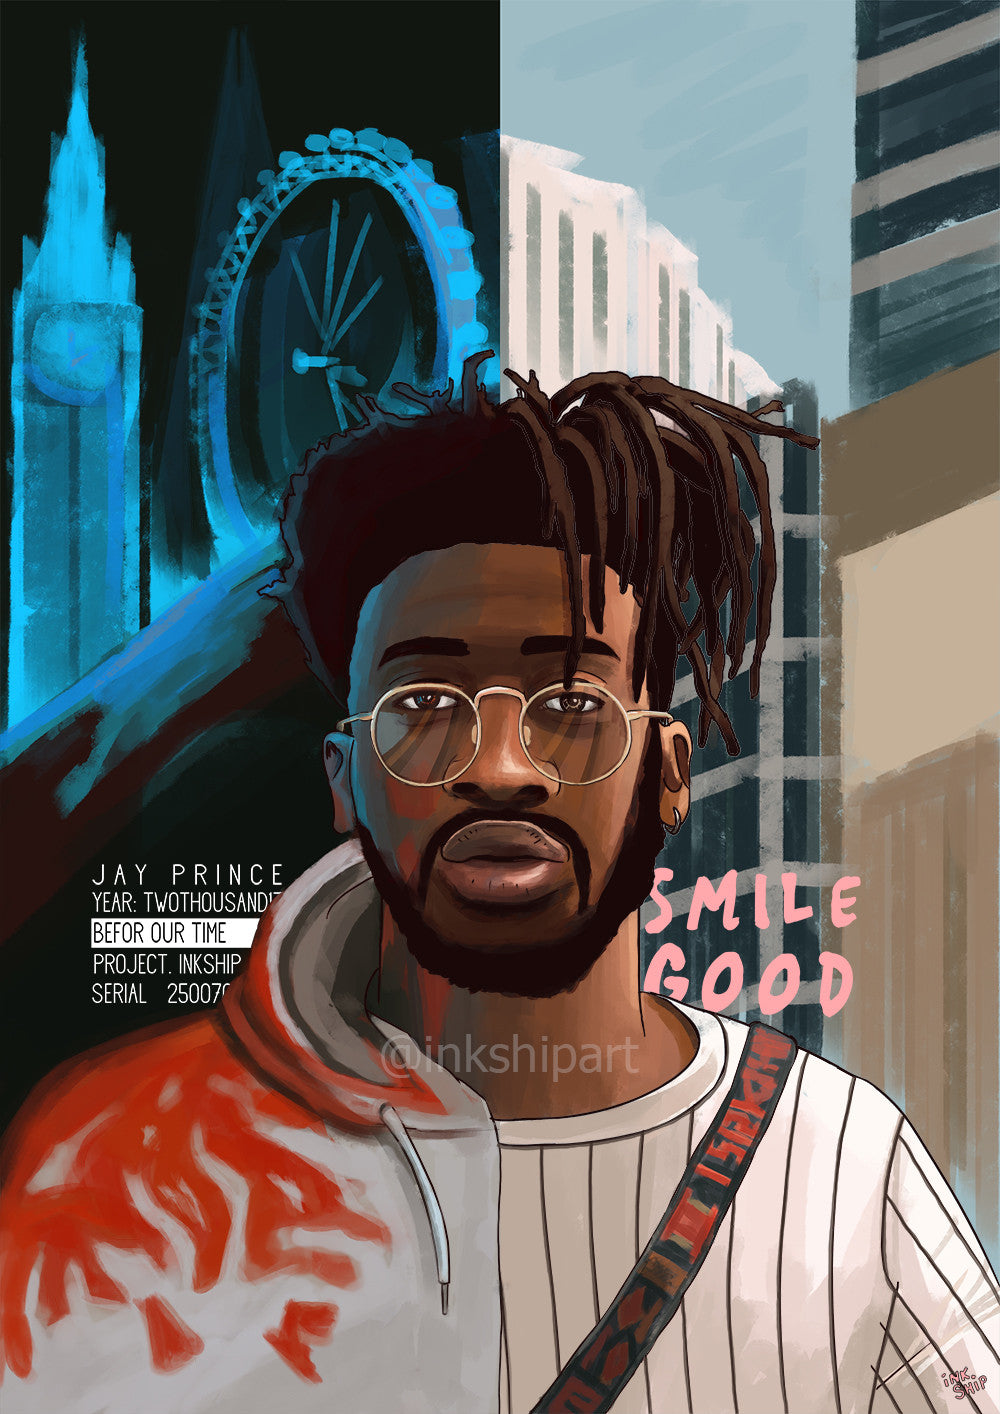 Jay Prince (A1 Only)